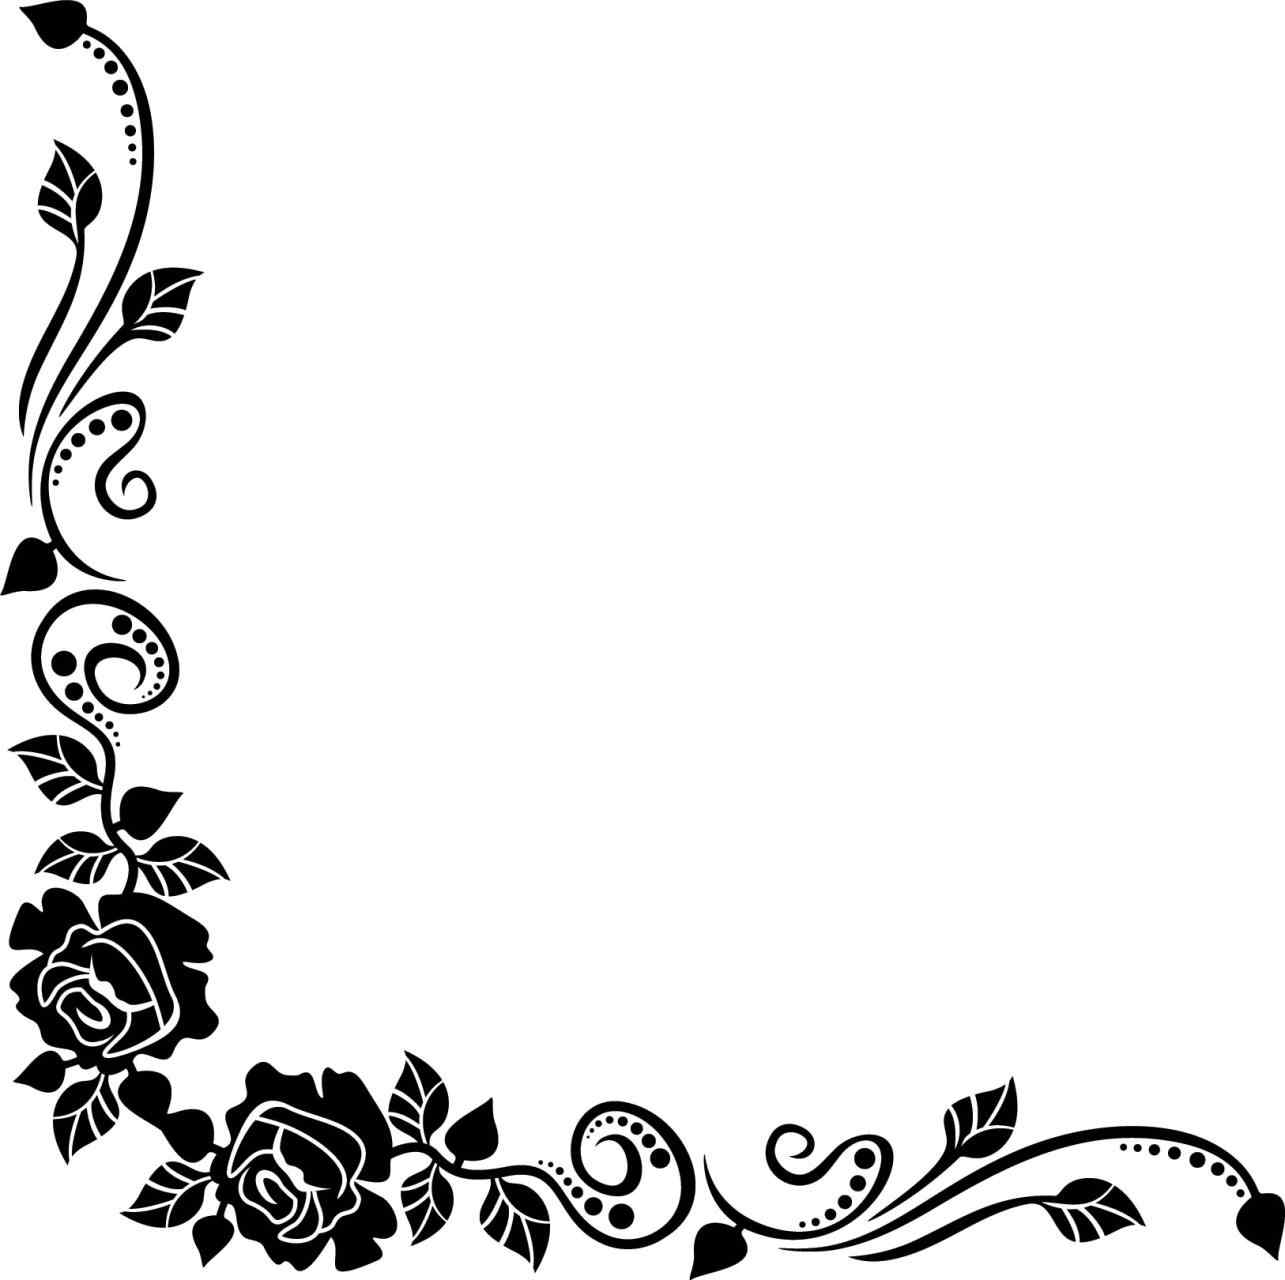 White flowers corner border clipart svg black and white library Flower Frame Clipart Black And White | Free download best ... svg black and white library